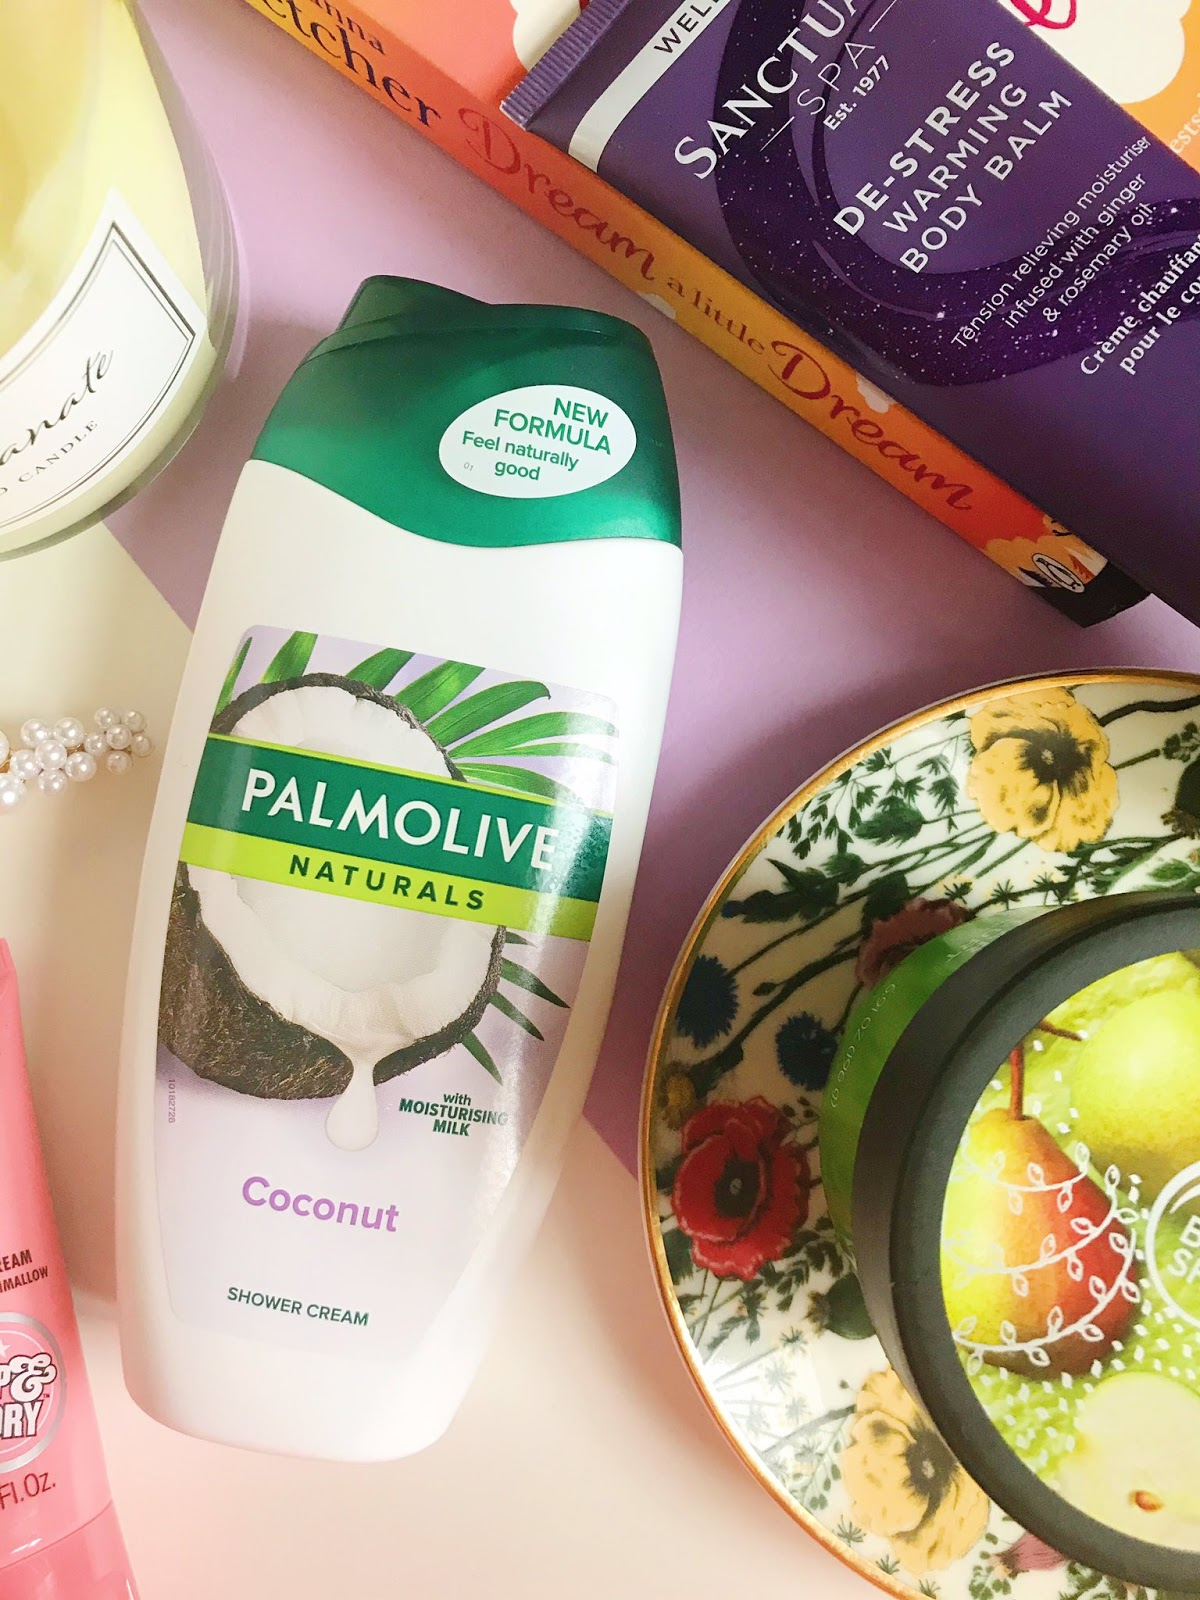 Palmolive Coconut Shower Cream surrounded by various other beauty products, books and candle